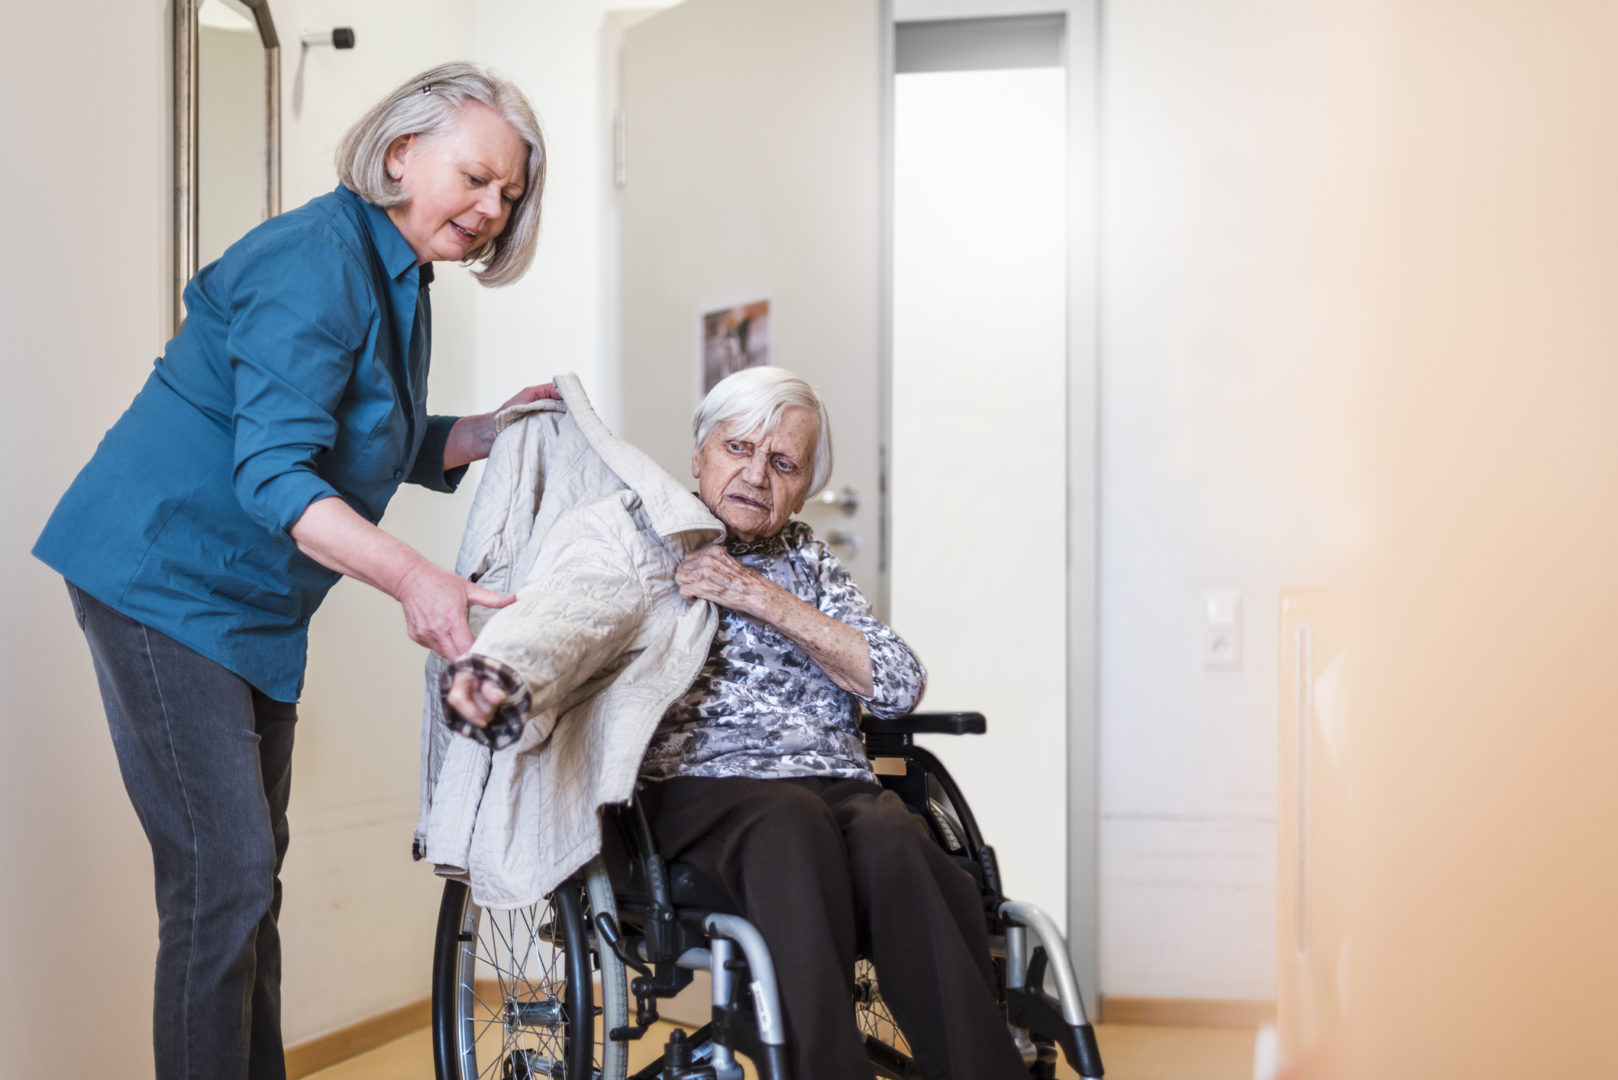 Hiring a caregiver: Should you work with an agency or find your own?